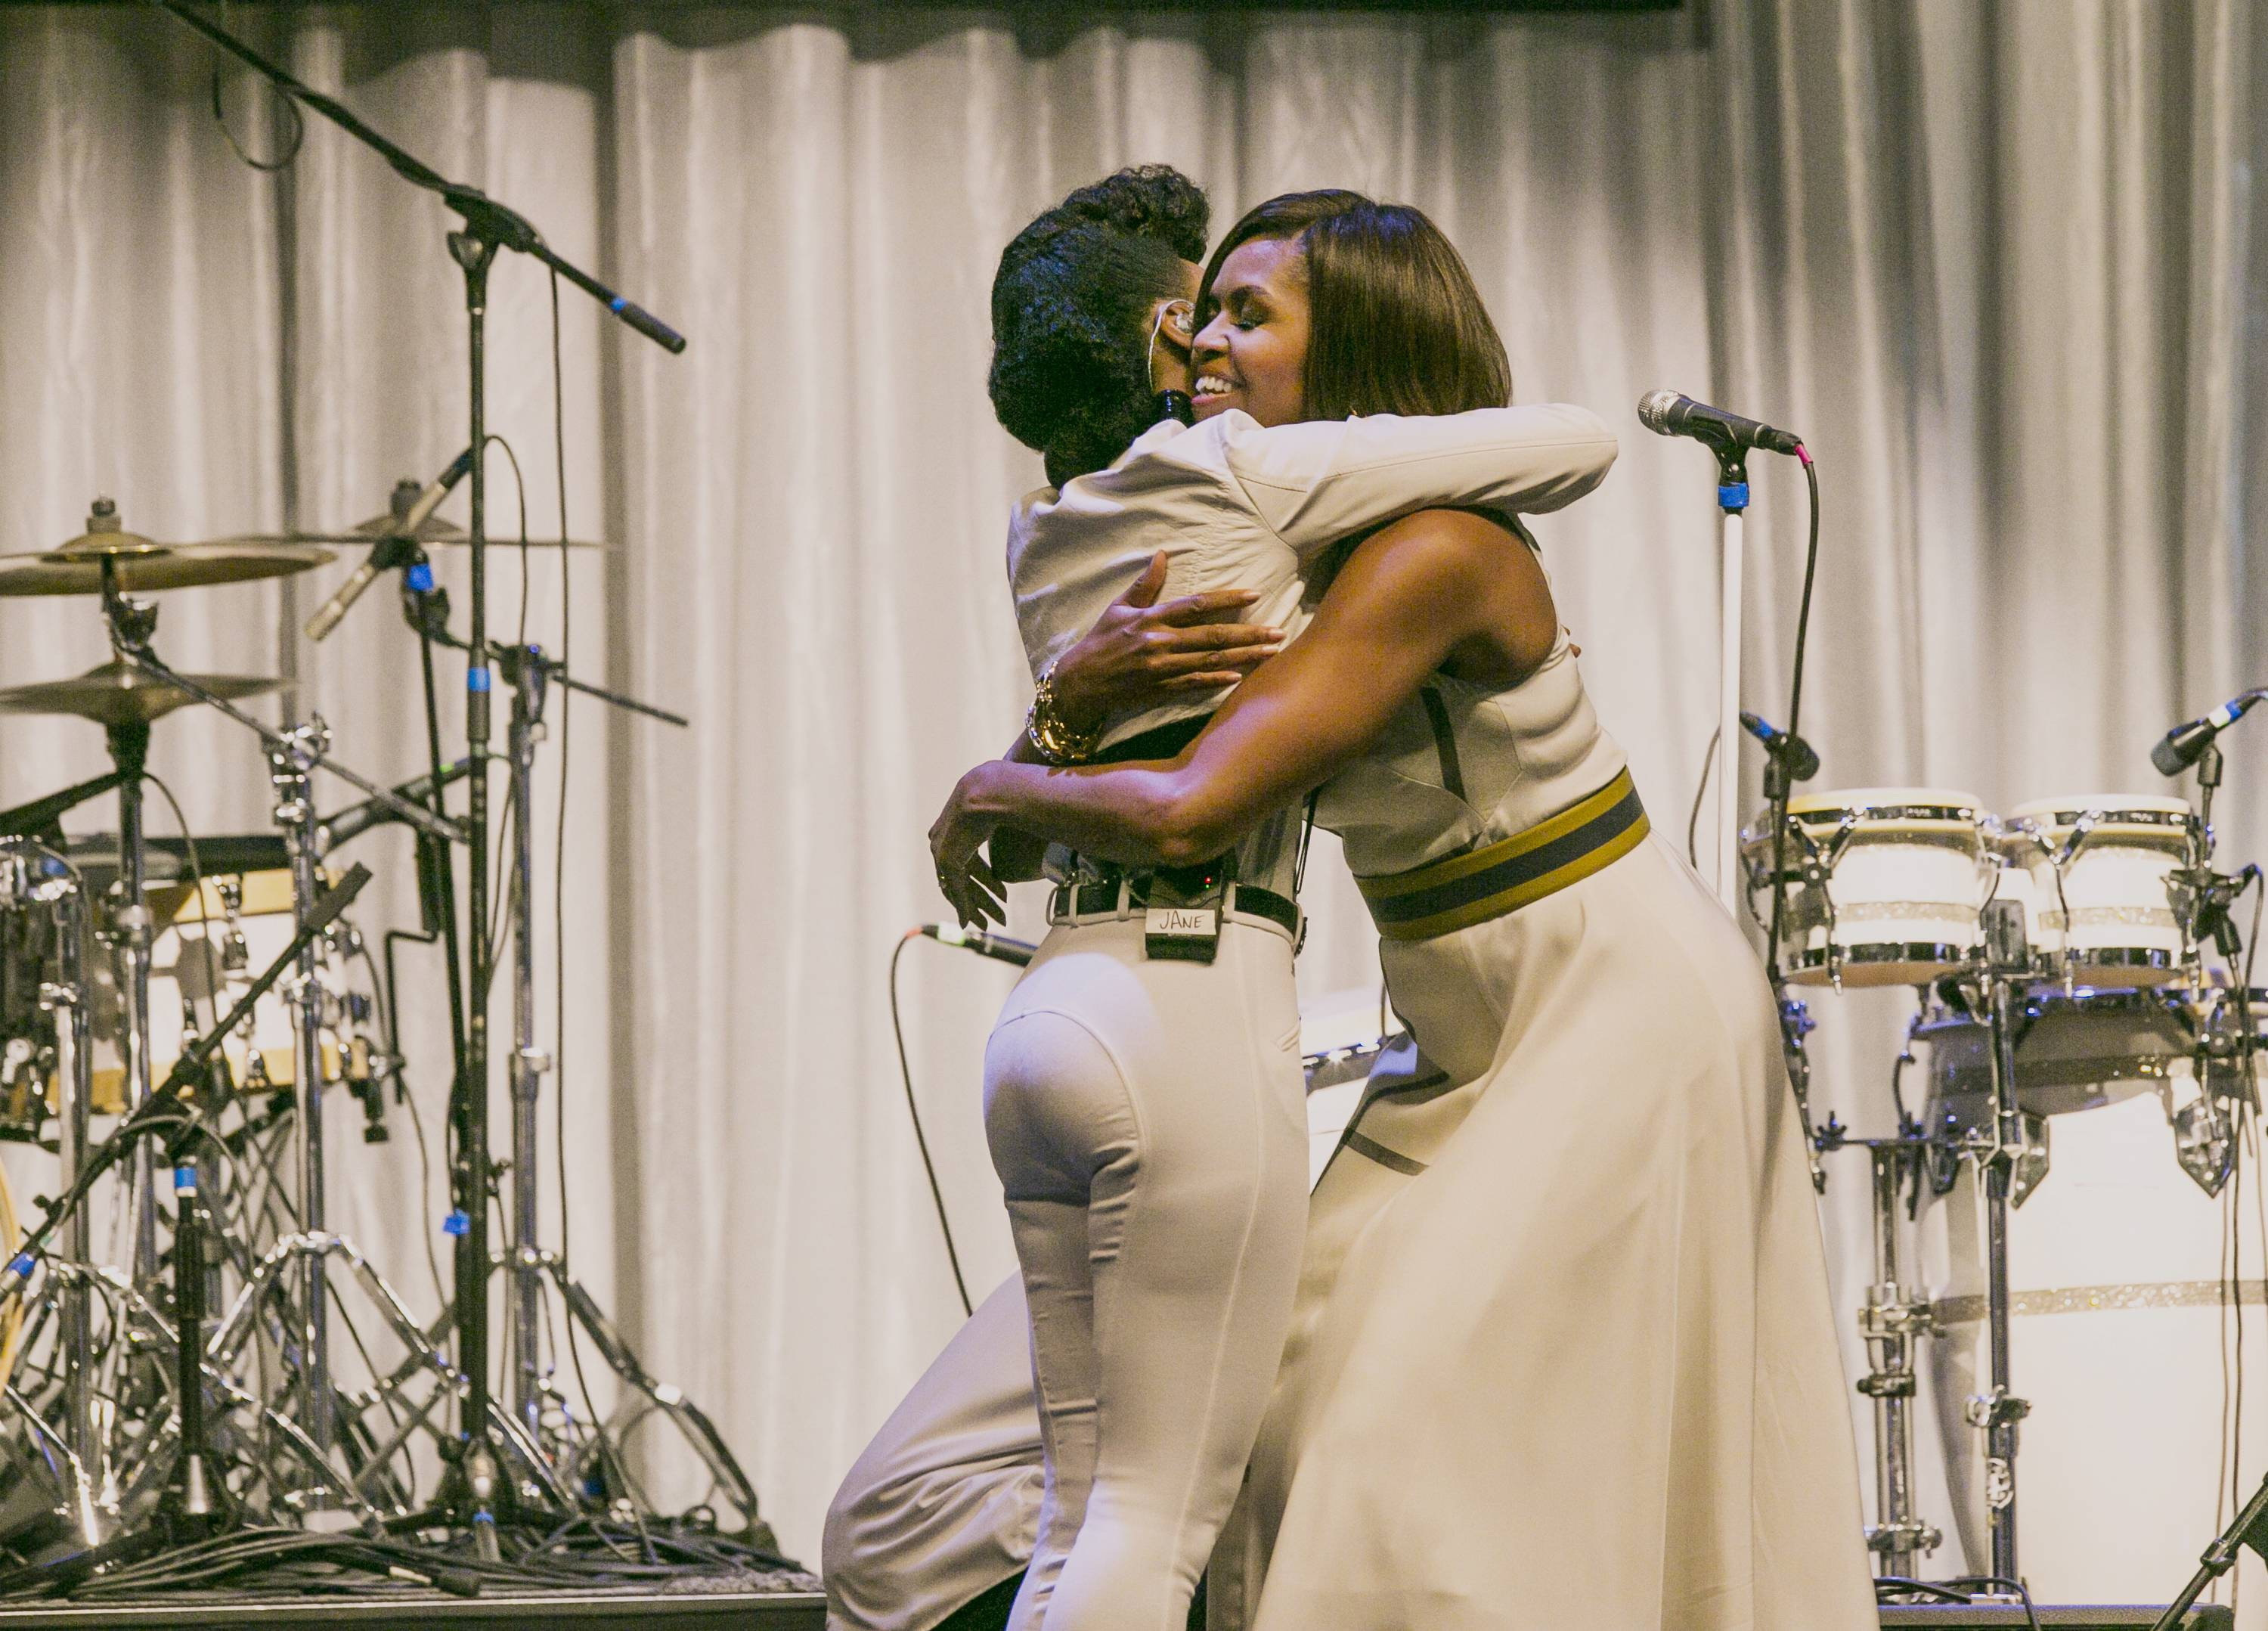 First lady Michelle Obama hugs Janelle Monae, a Grammy Award-nominated singer after delivering remarks at the Grammy Museum's Jane Ortner Education Award Luncheon in Los Angeles Wednesday, July, 16, 2014. The first lady says every arts organization in the country should embrace the mission of the Grammy Museum in Los Angeles, which focuses on education.